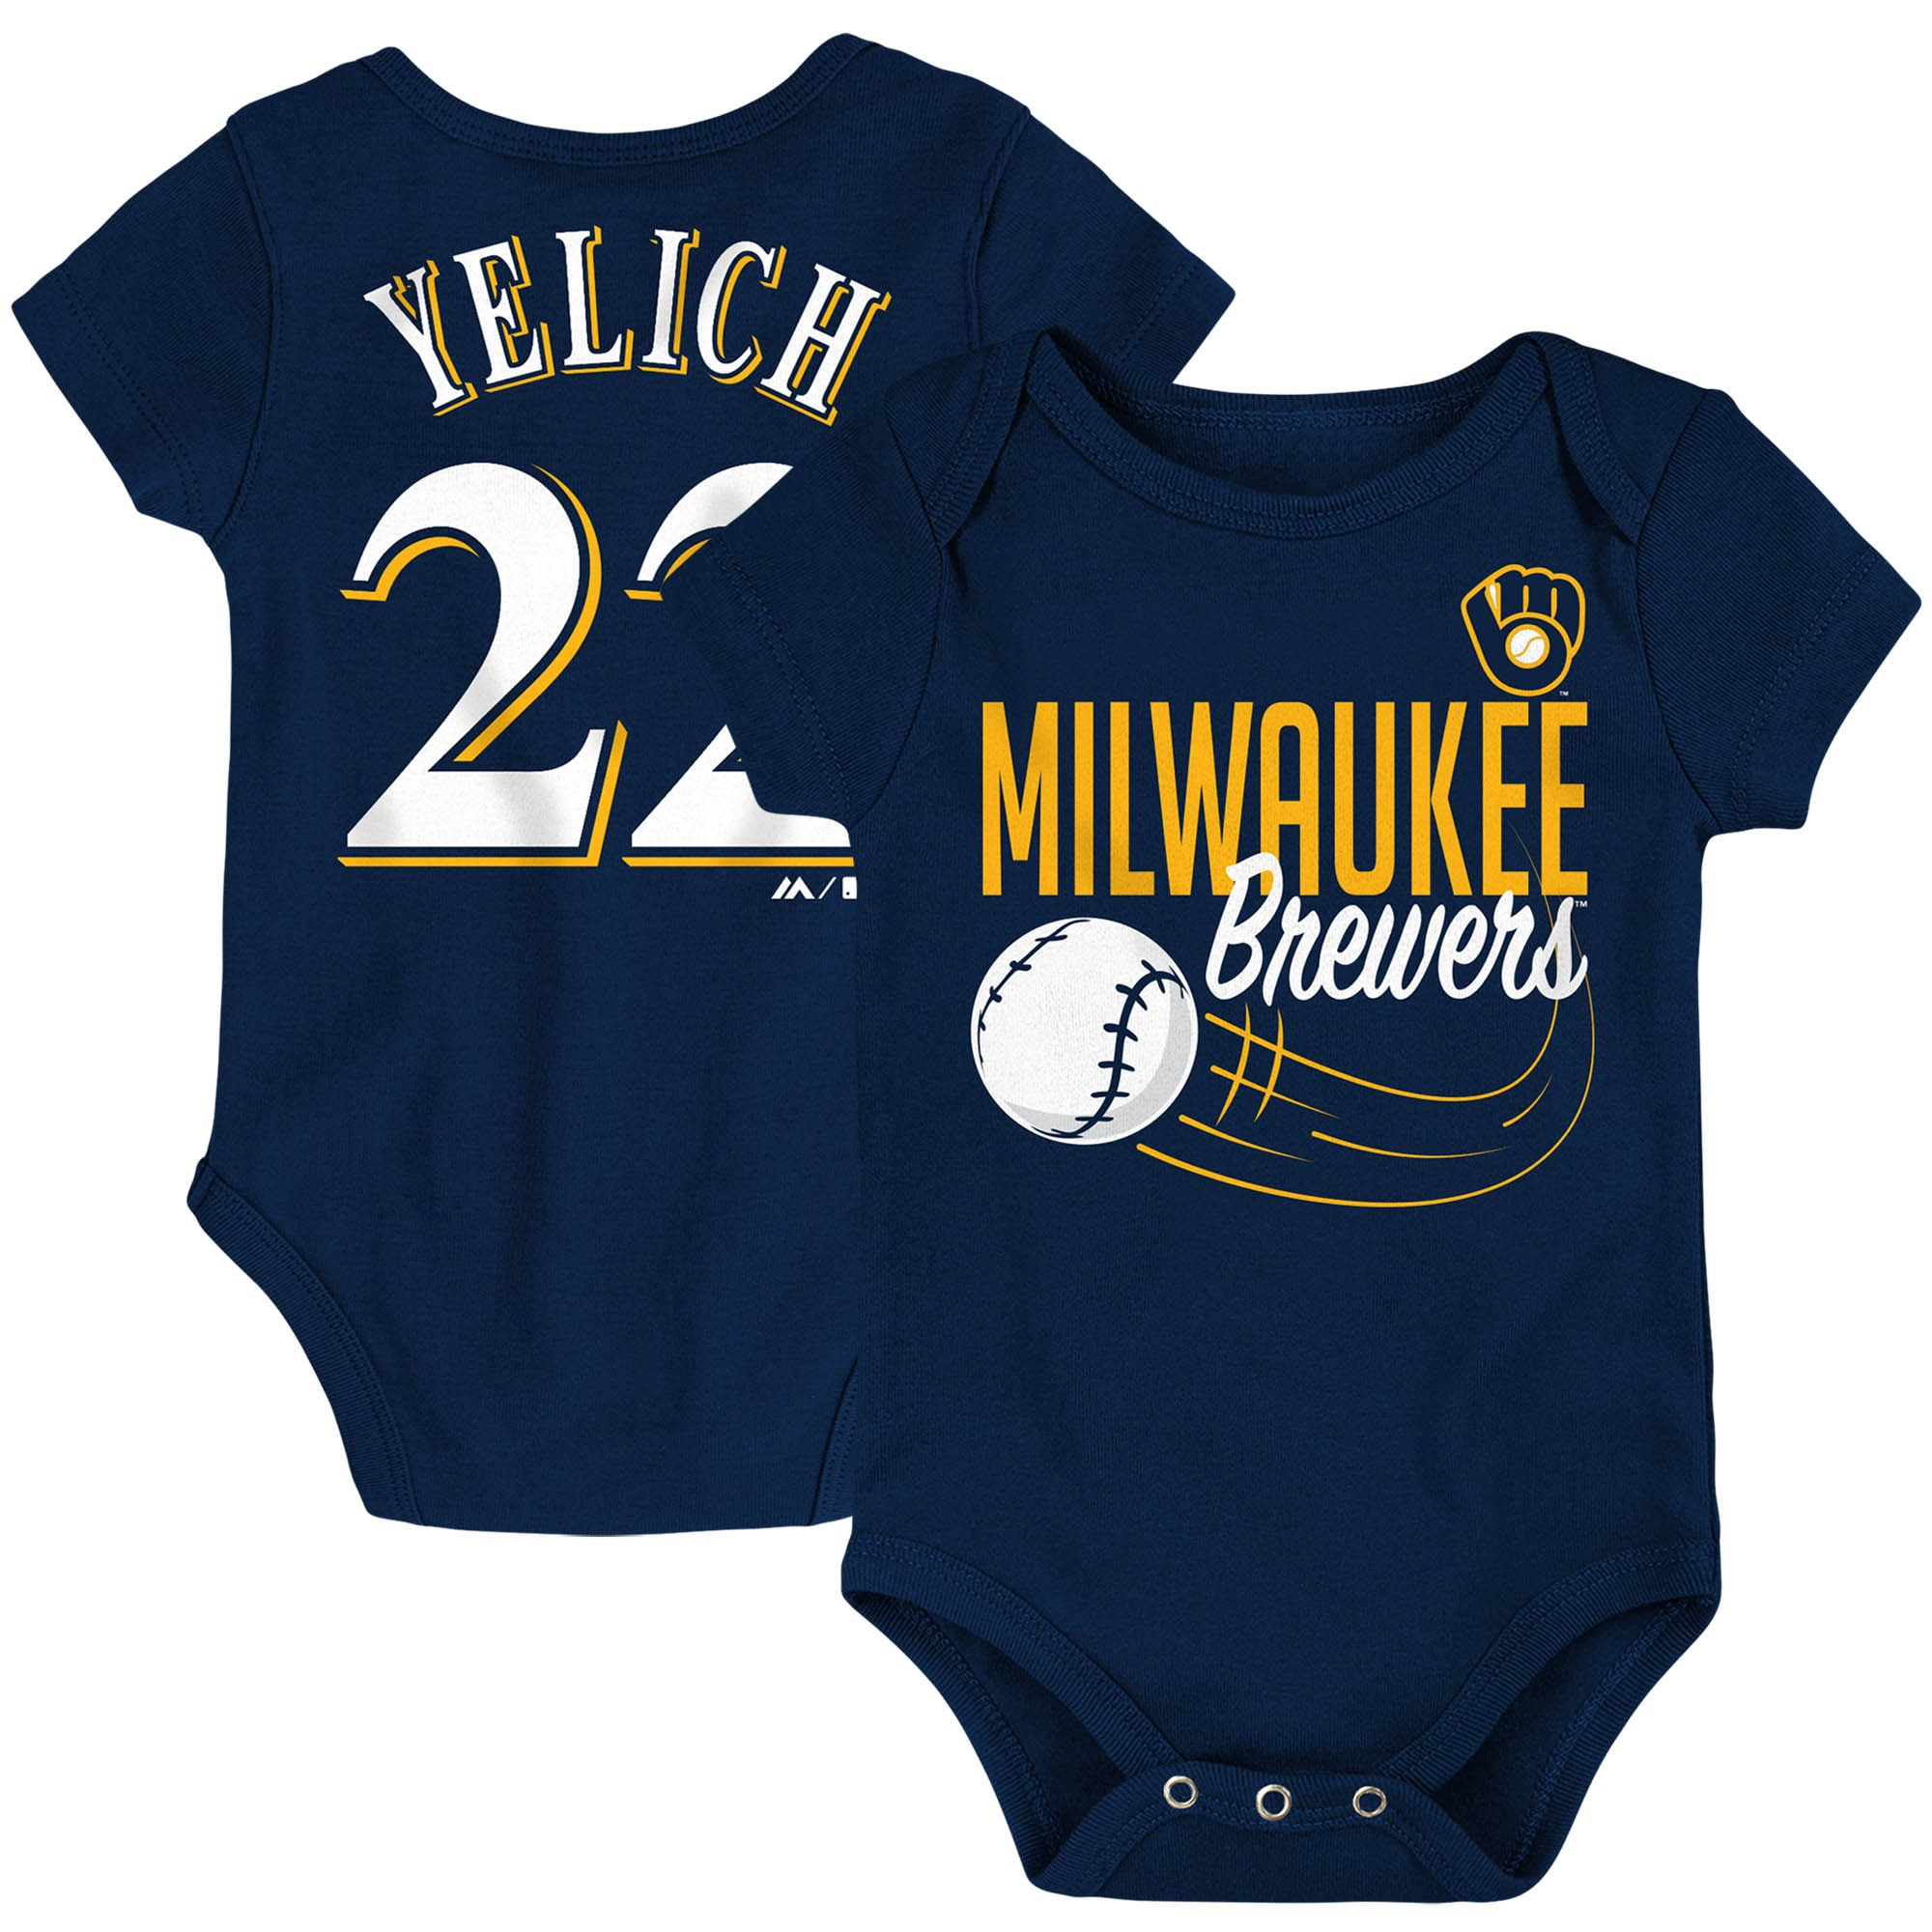 Christian Yelich Milwaukee Brewers Majestic Newborn & Infant Baby Slugger Name & Number Bodysuit - Navy